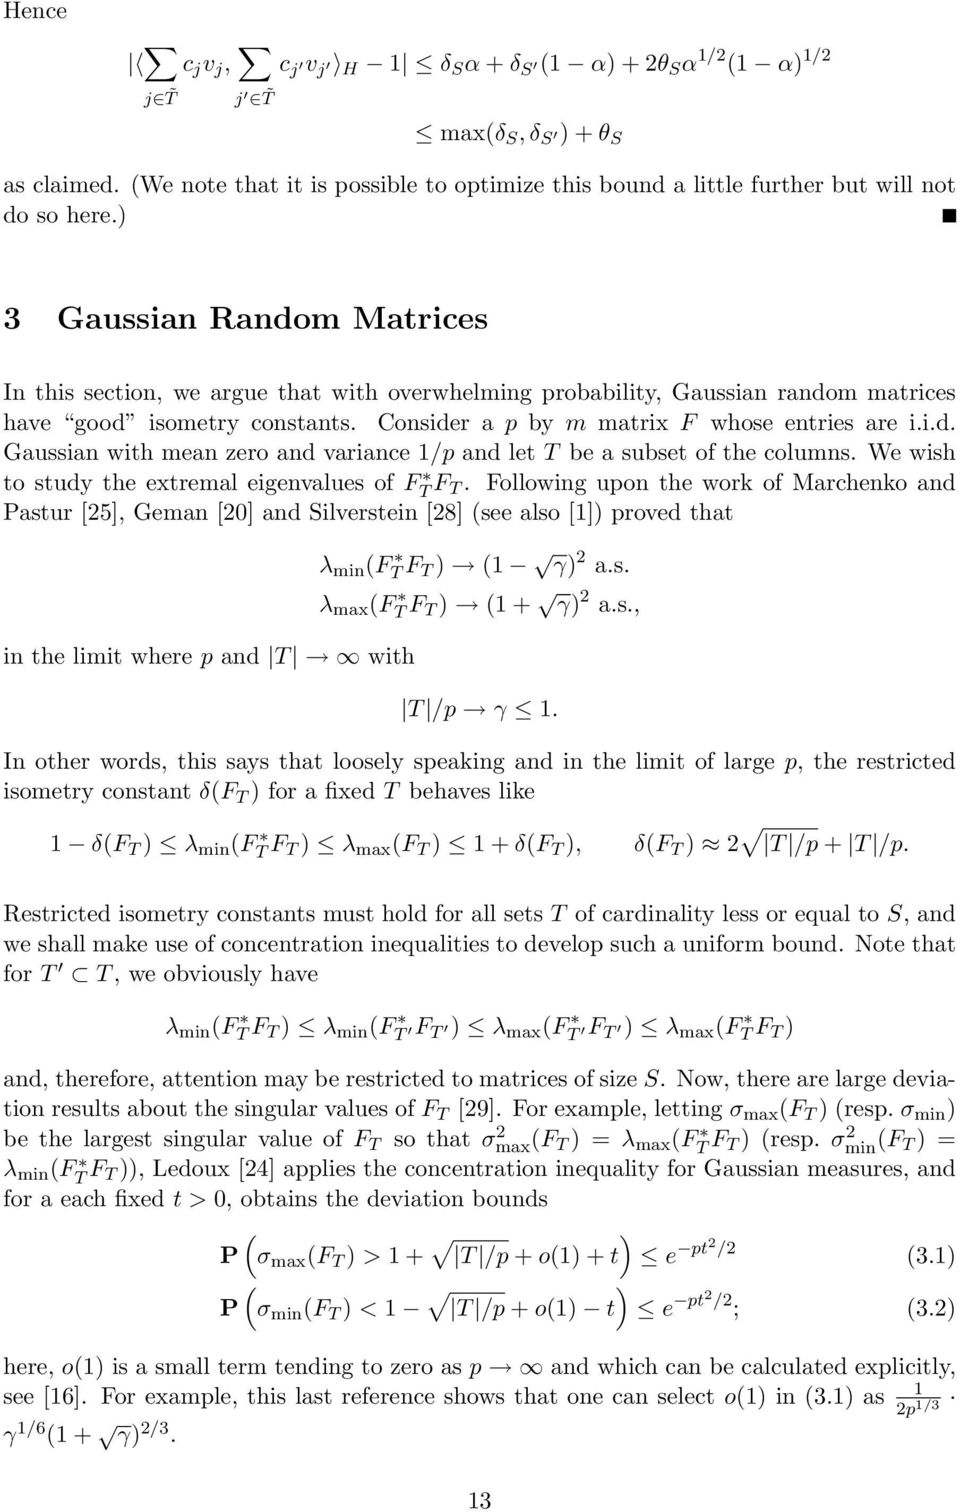 ) 3 Gaussian Random Matrices In this section, we argue that with overwhelming probability, Gaussian random matrices have good isometry constants. Consider a p by m matrix F whose entries are i.i.d. Gaussian with mean zero and variance 1/p and let T be a subset of the columns.